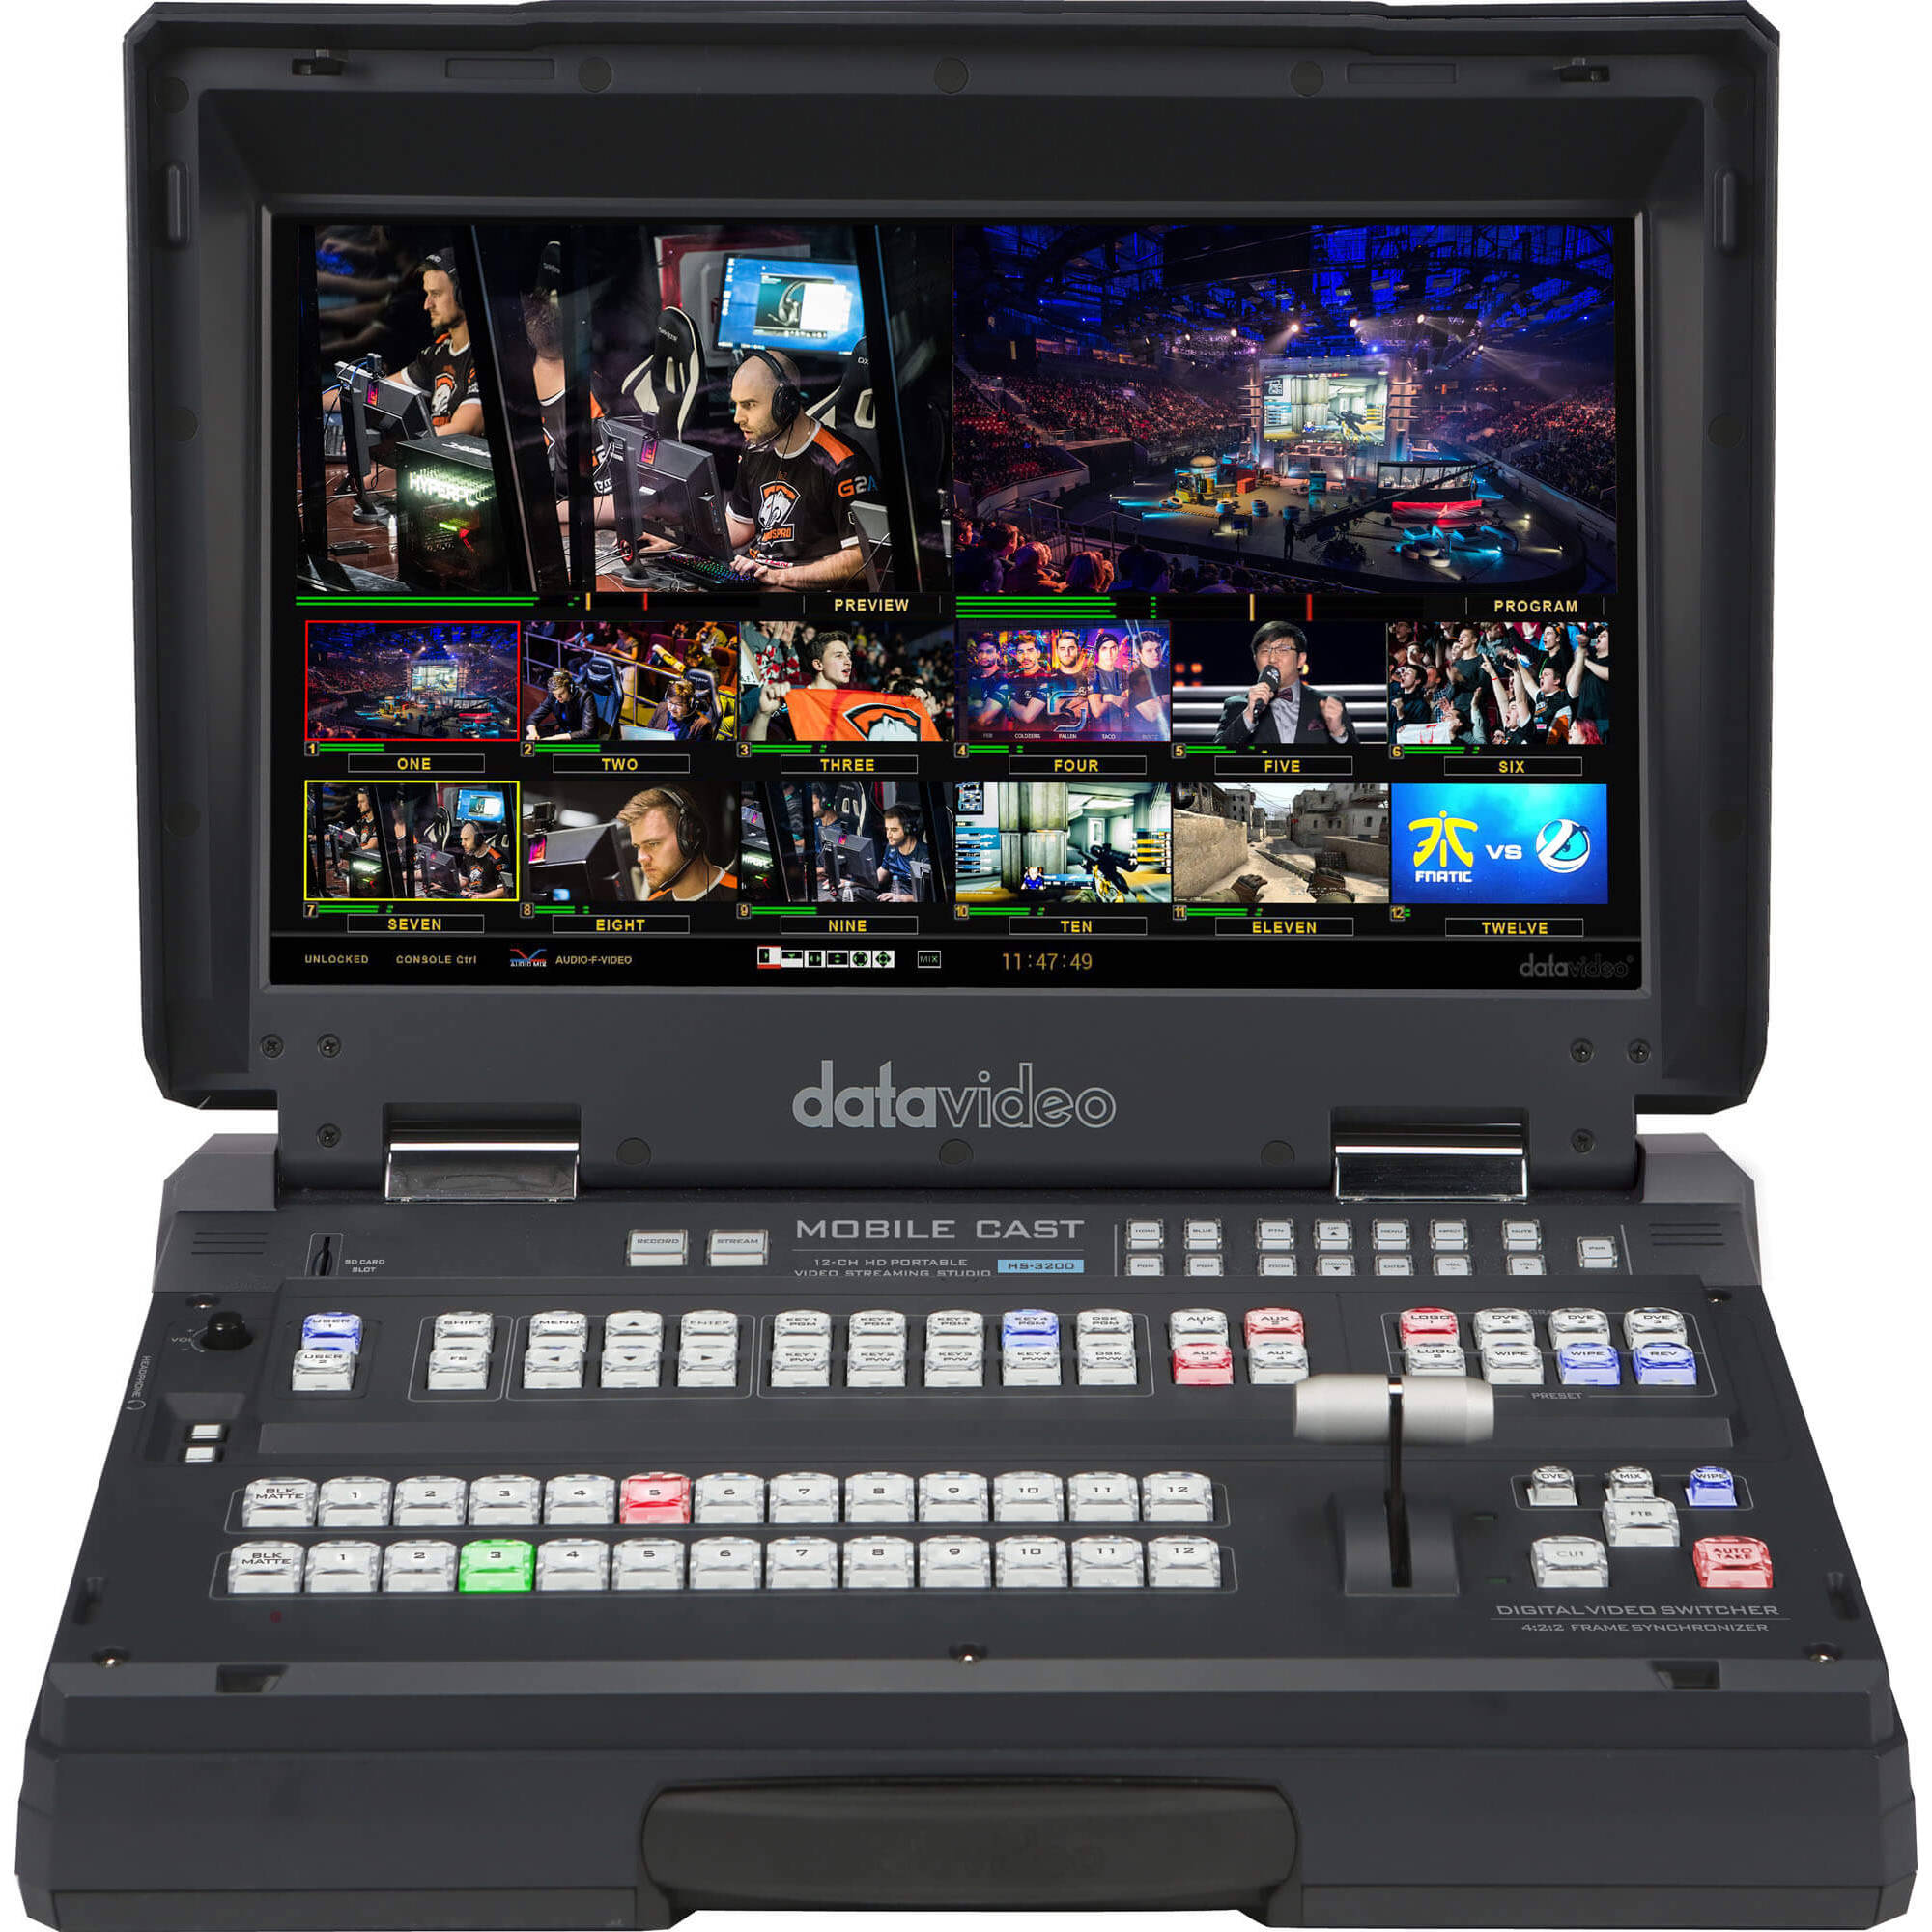 Datavideo 12 Input HD-SDI And HDMI Hand Carried Mobile Studio With Built-In  17 3